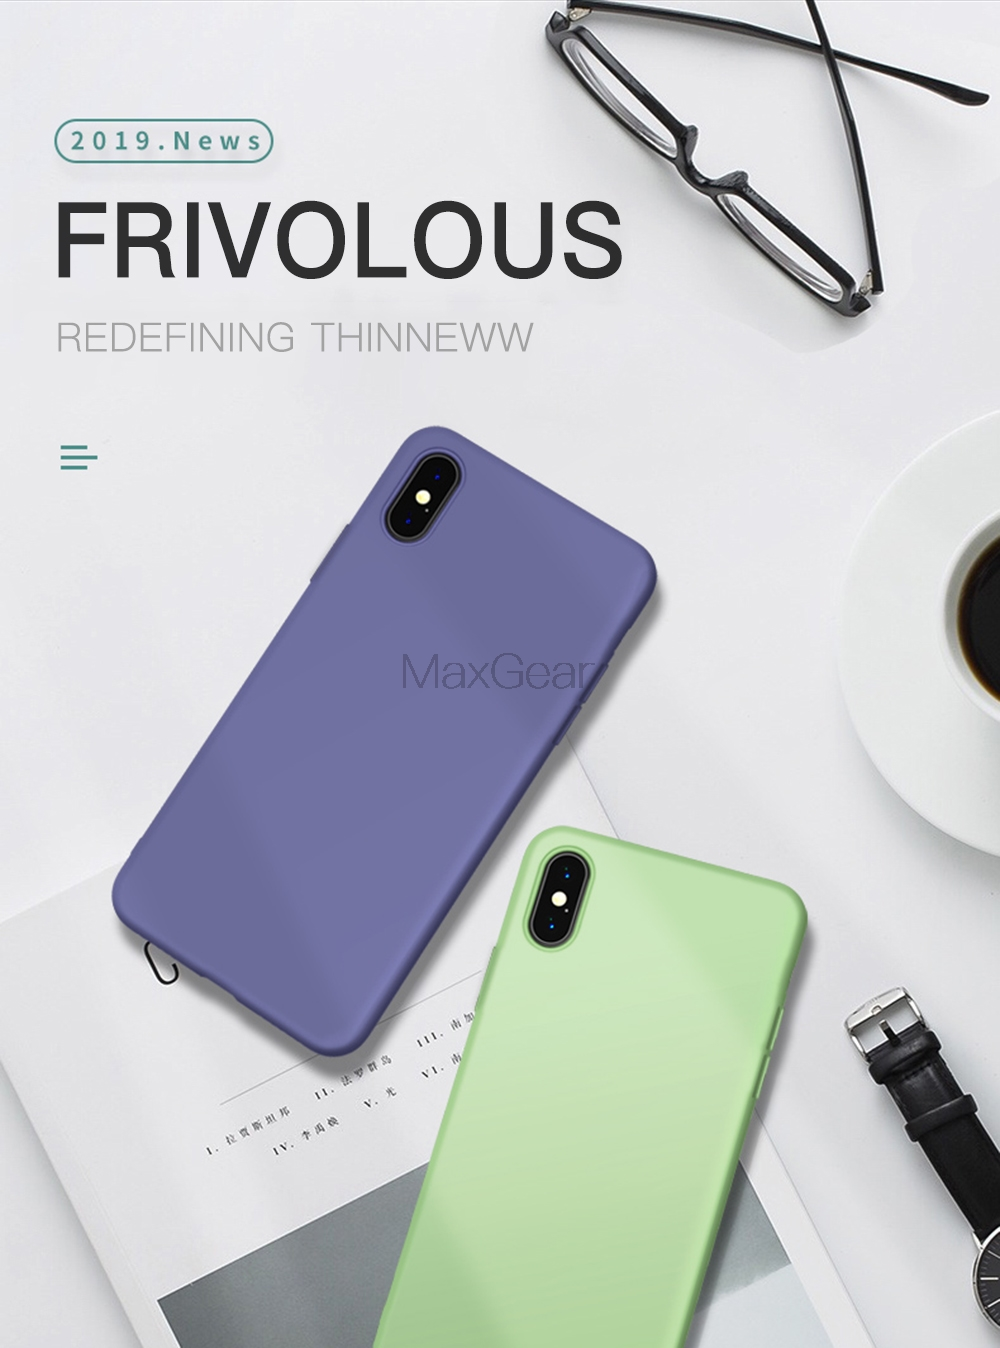 Thin Soft Case For iPhone 7 8 6 6s Plus 4 5S SE 2 Original Liquid Silicone Cover Candy Coque Capa For iPhone X Xs 11 Pro Max XR